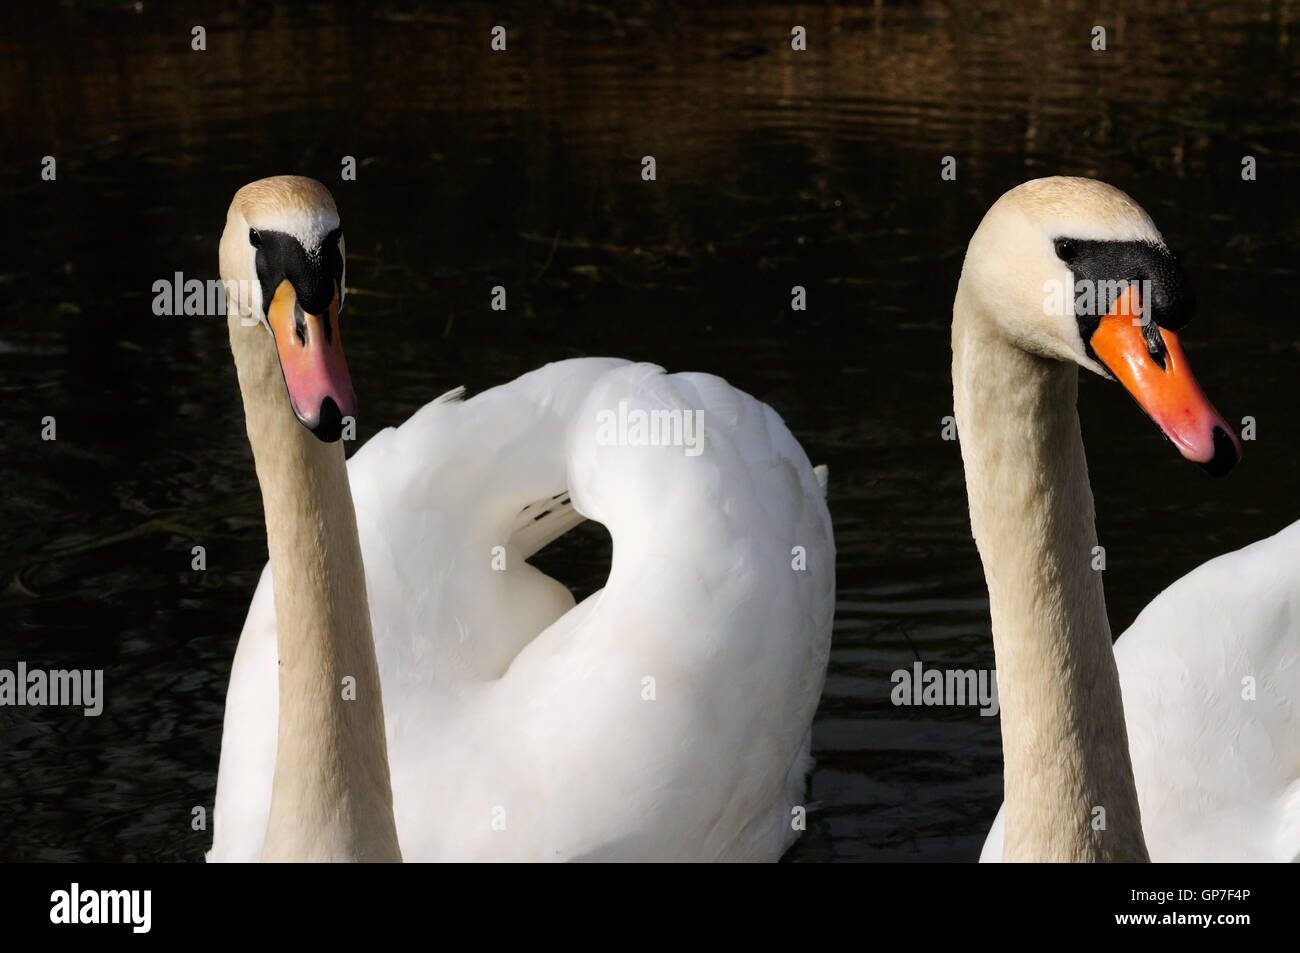 A pair of mute swans (Cygnus olor). - Stock Image